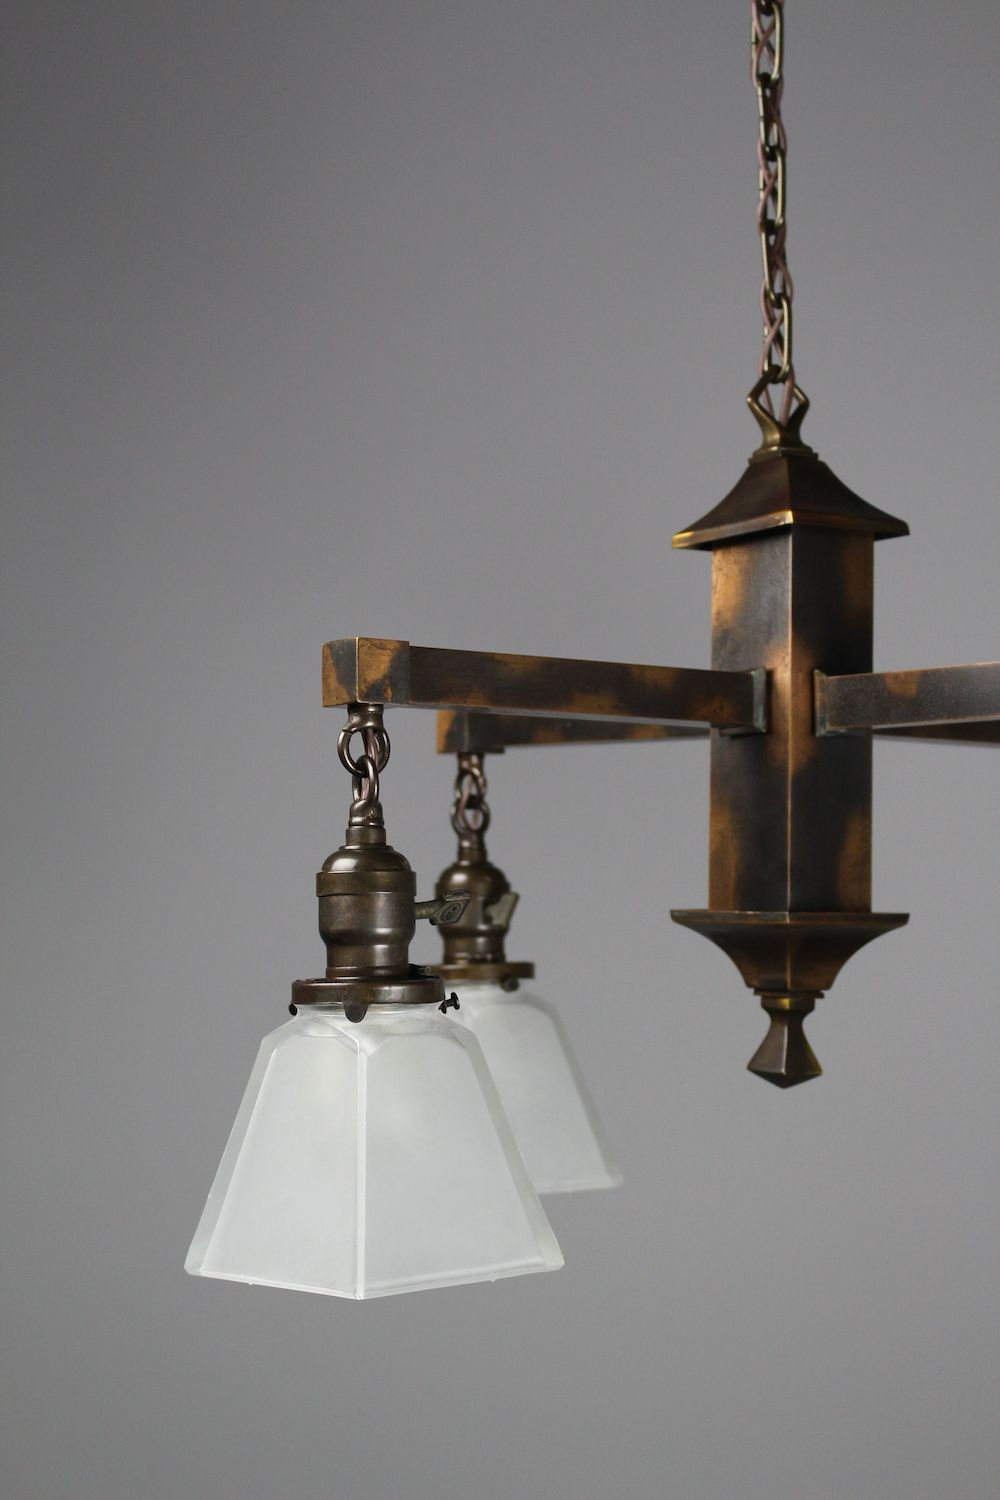 Mission Fixture 4 Light With Japanned Finish Renew